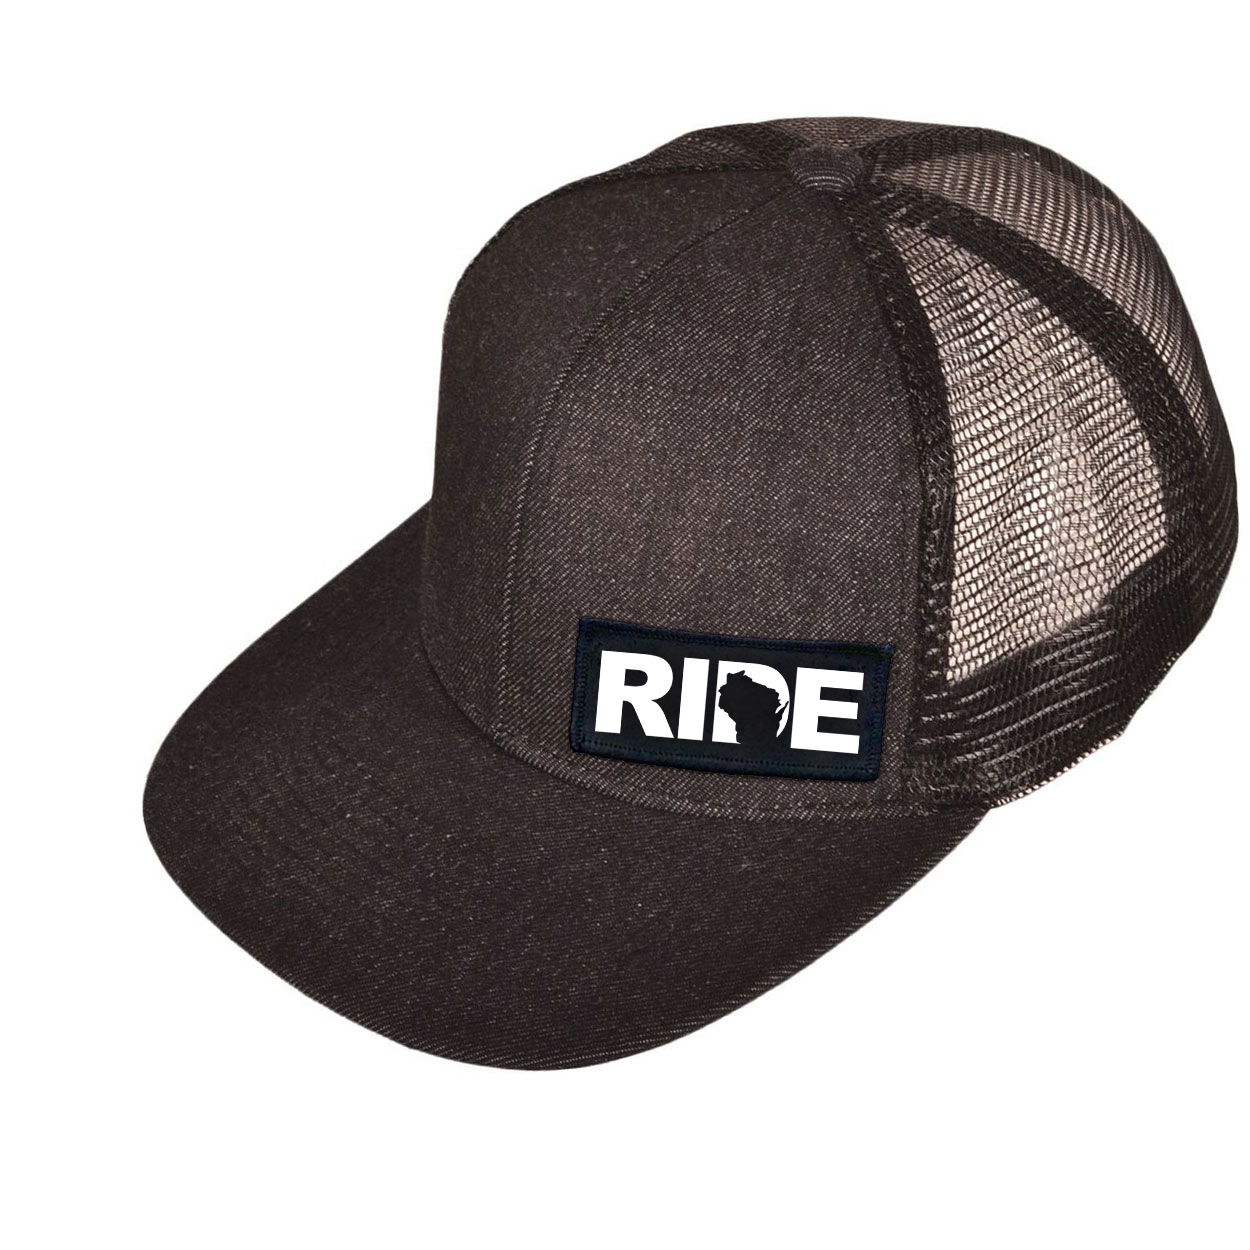 Ride Wisconsin Night Out Woven Patch Snapback Flat Brim Hat Black Denim (White Logo)